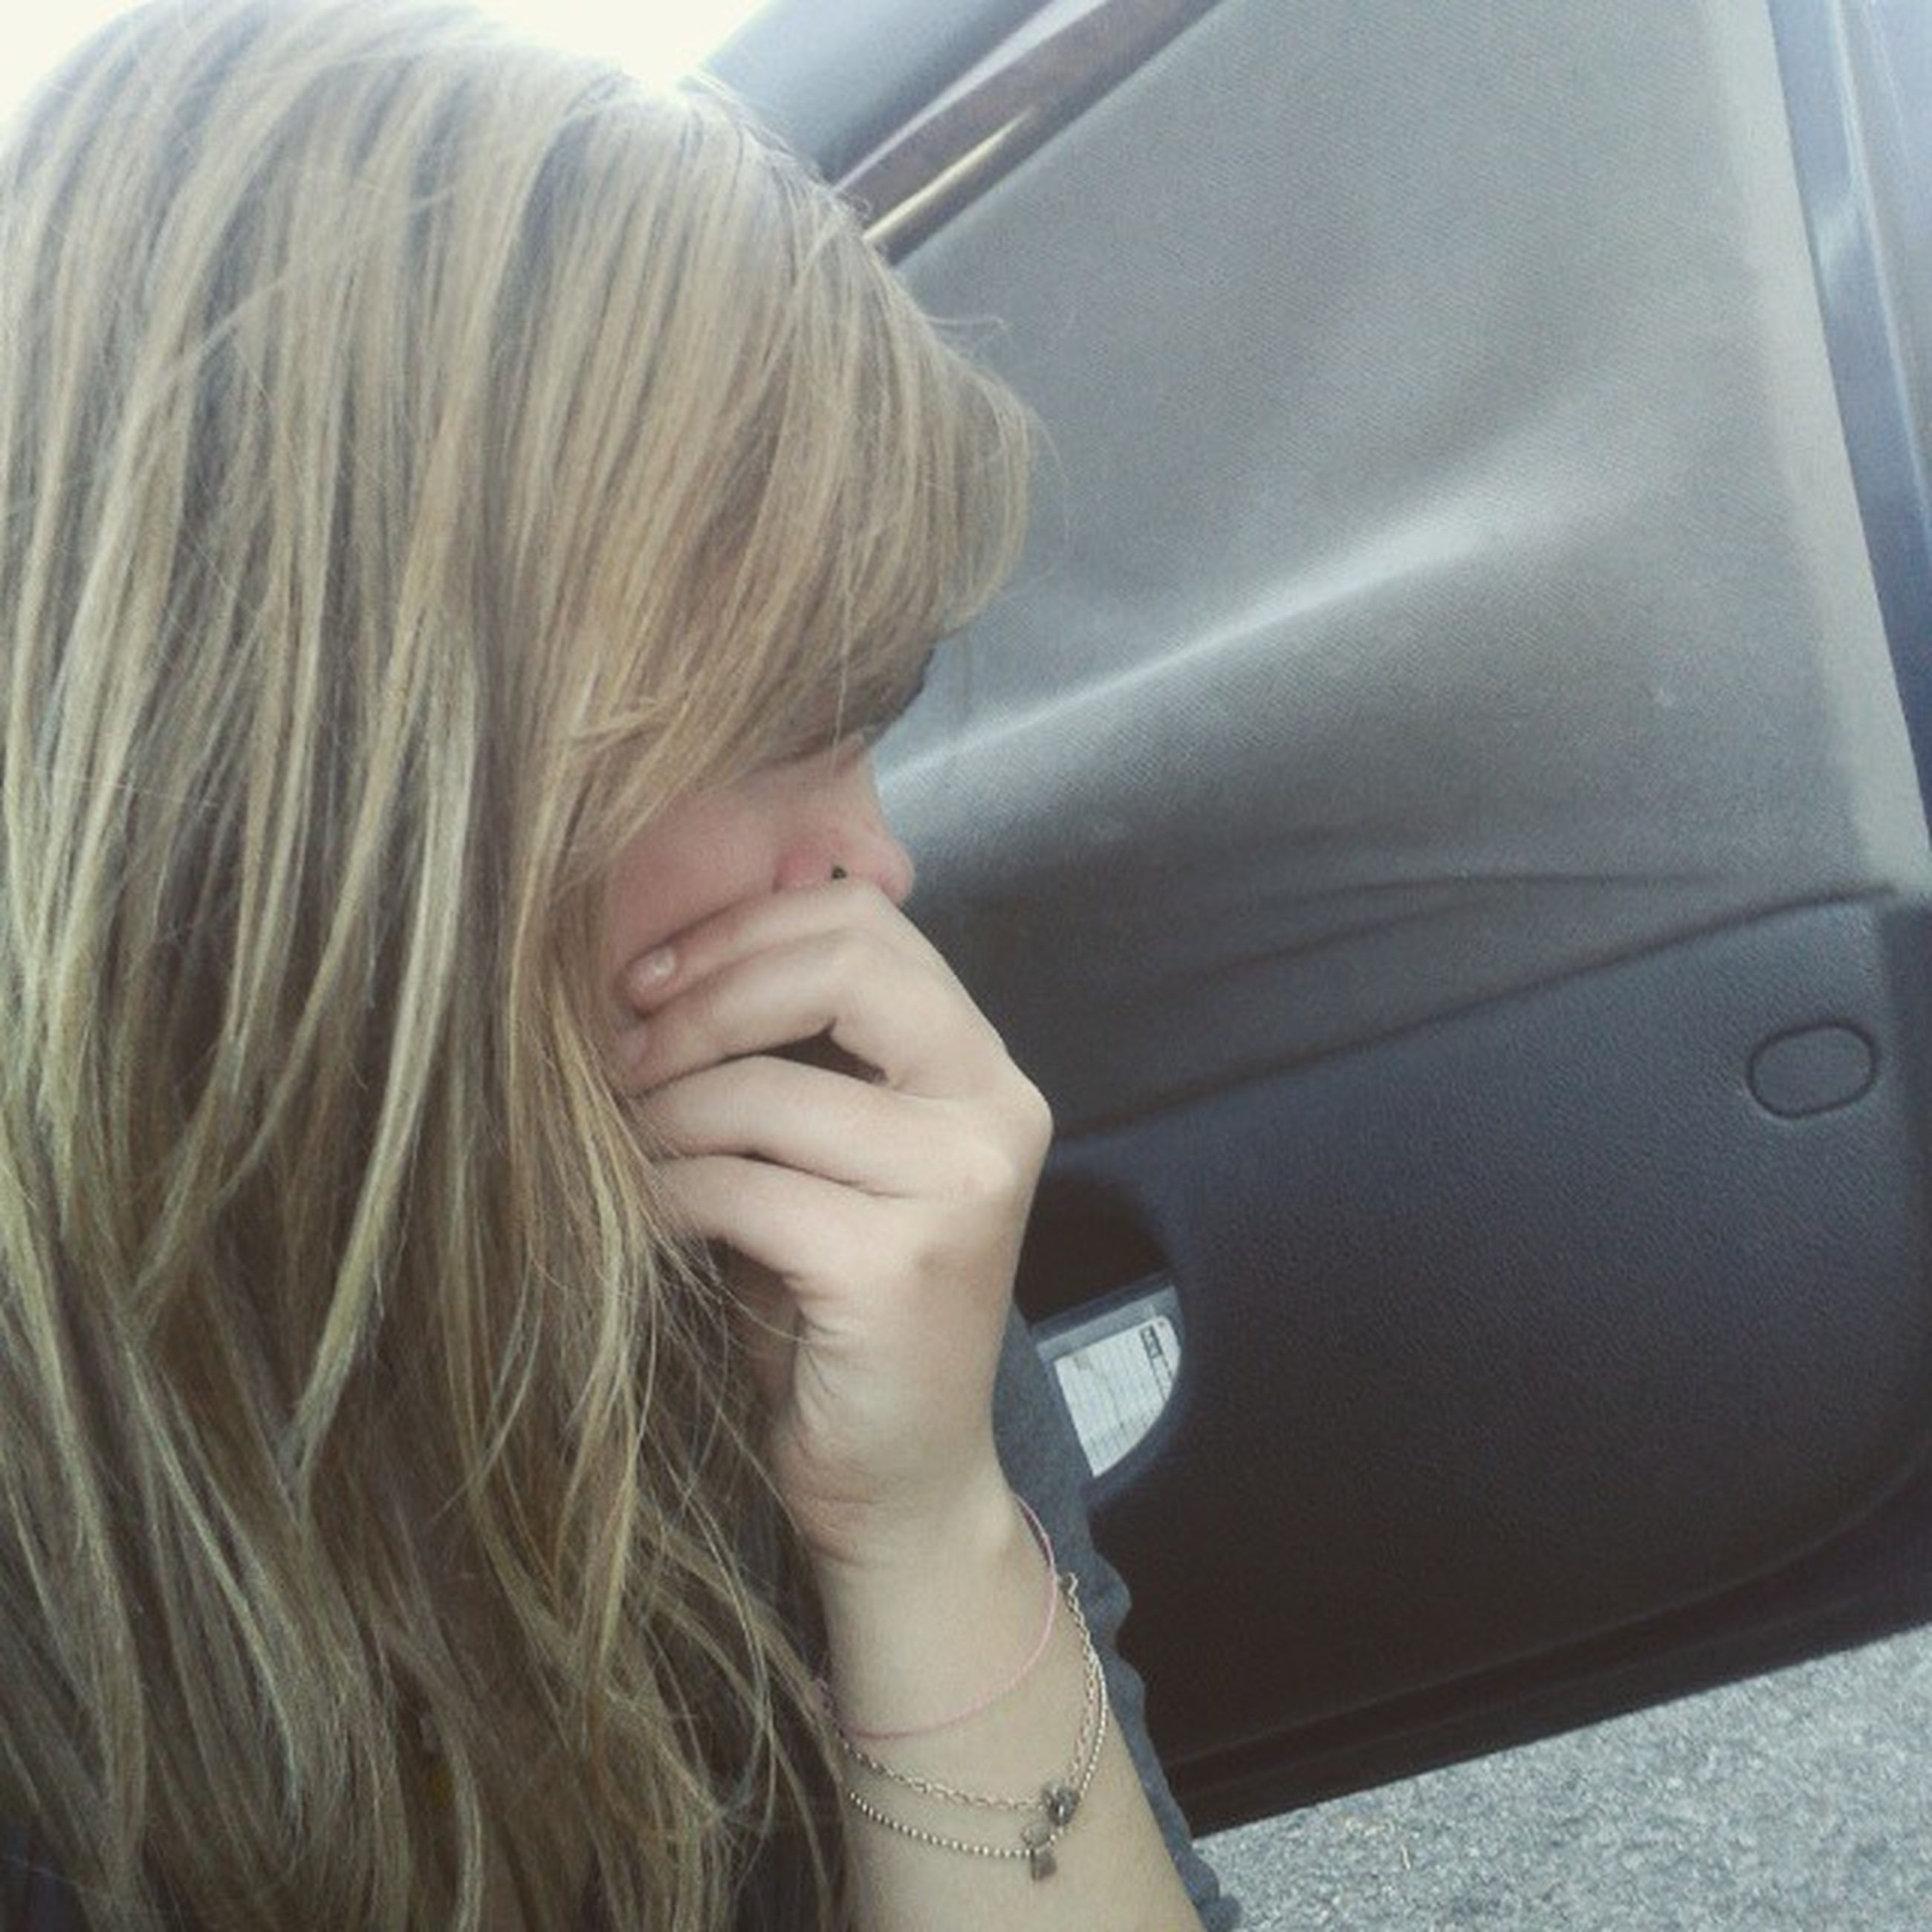 lifestyles, indoors, person, long hair, young women, leisure activity, headshot, young adult, blond hair, close-up, transportation, casual clothing, human hair, vehicle interior, looking away, side view